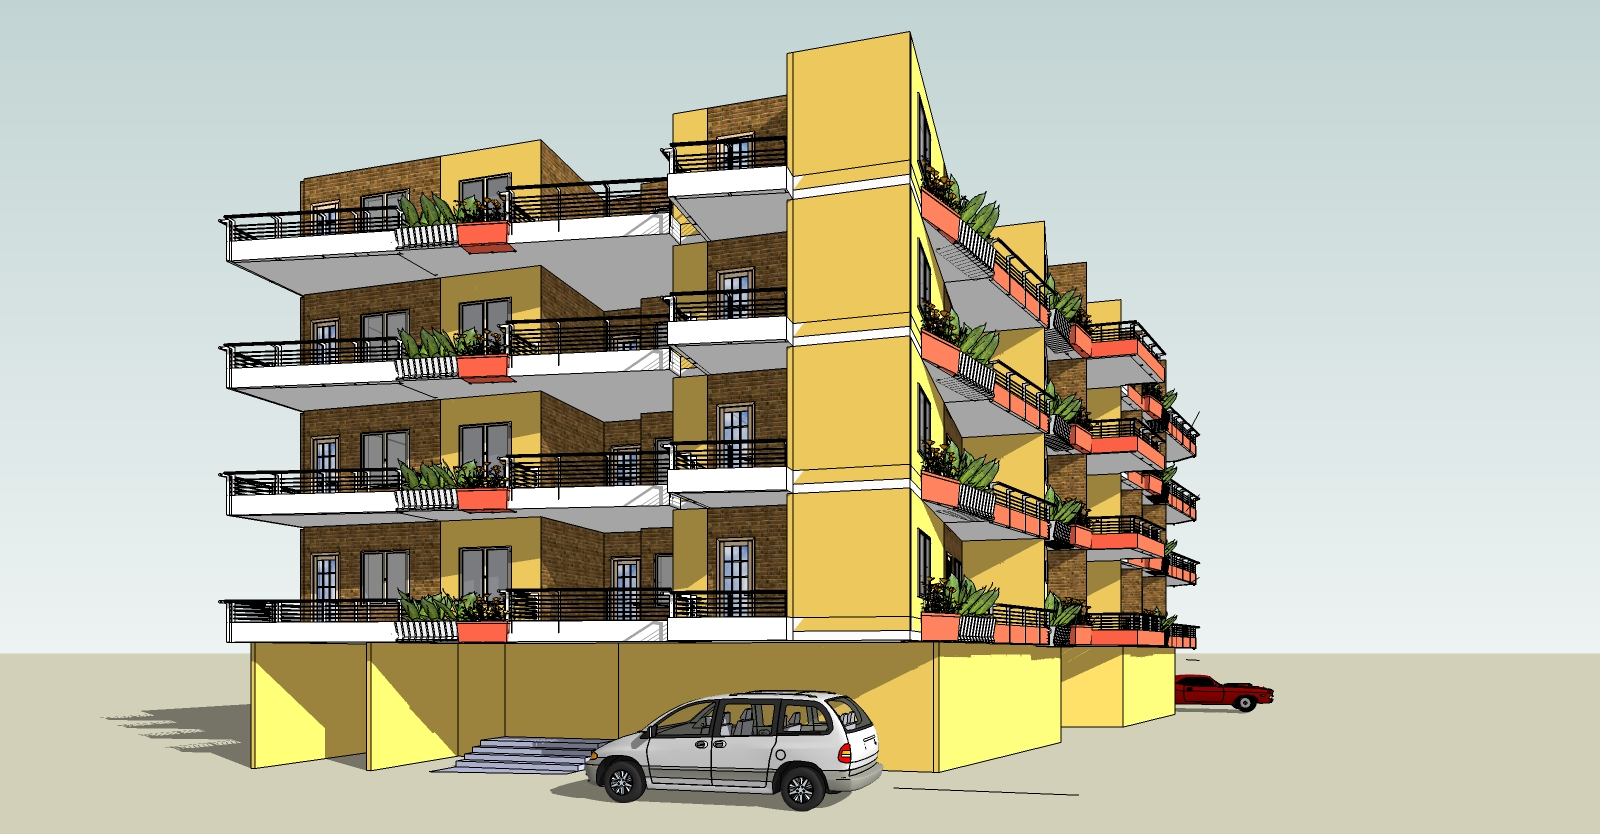 Location: Aksaray, Turkey New Residential / Apartment Building Plans